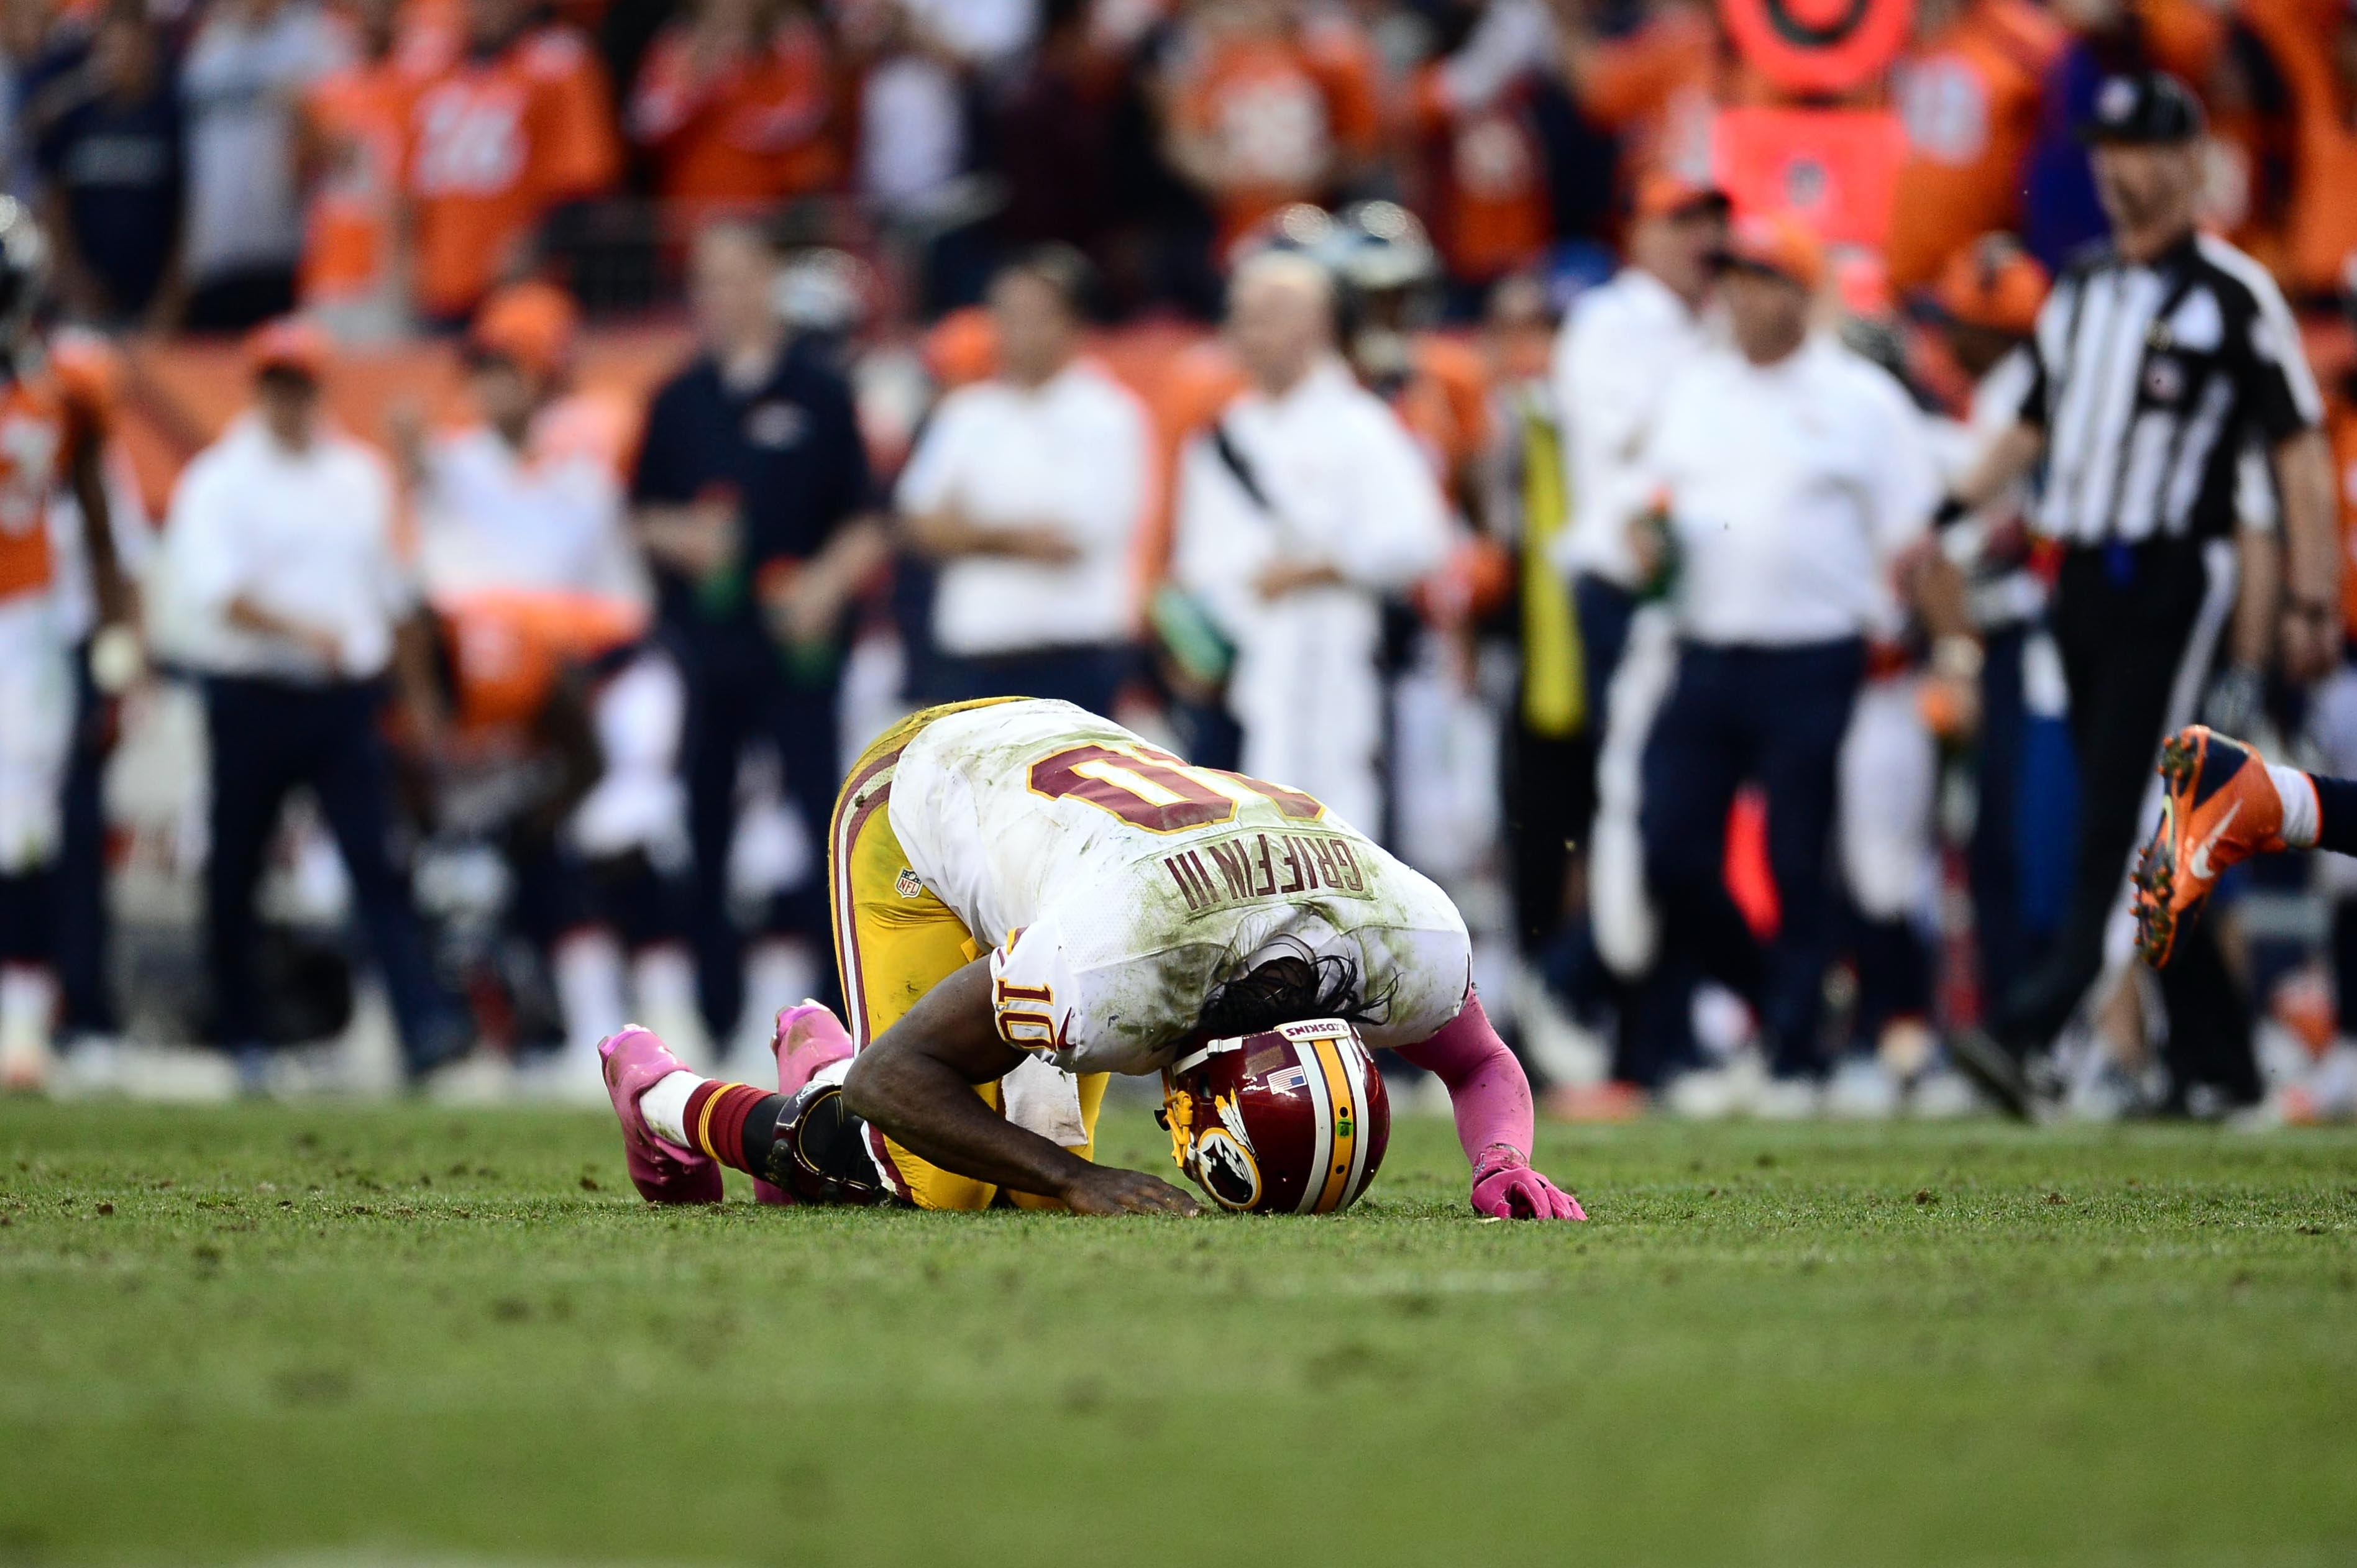 NFL neurologist who switched RG3 diagnosis resigns, per report